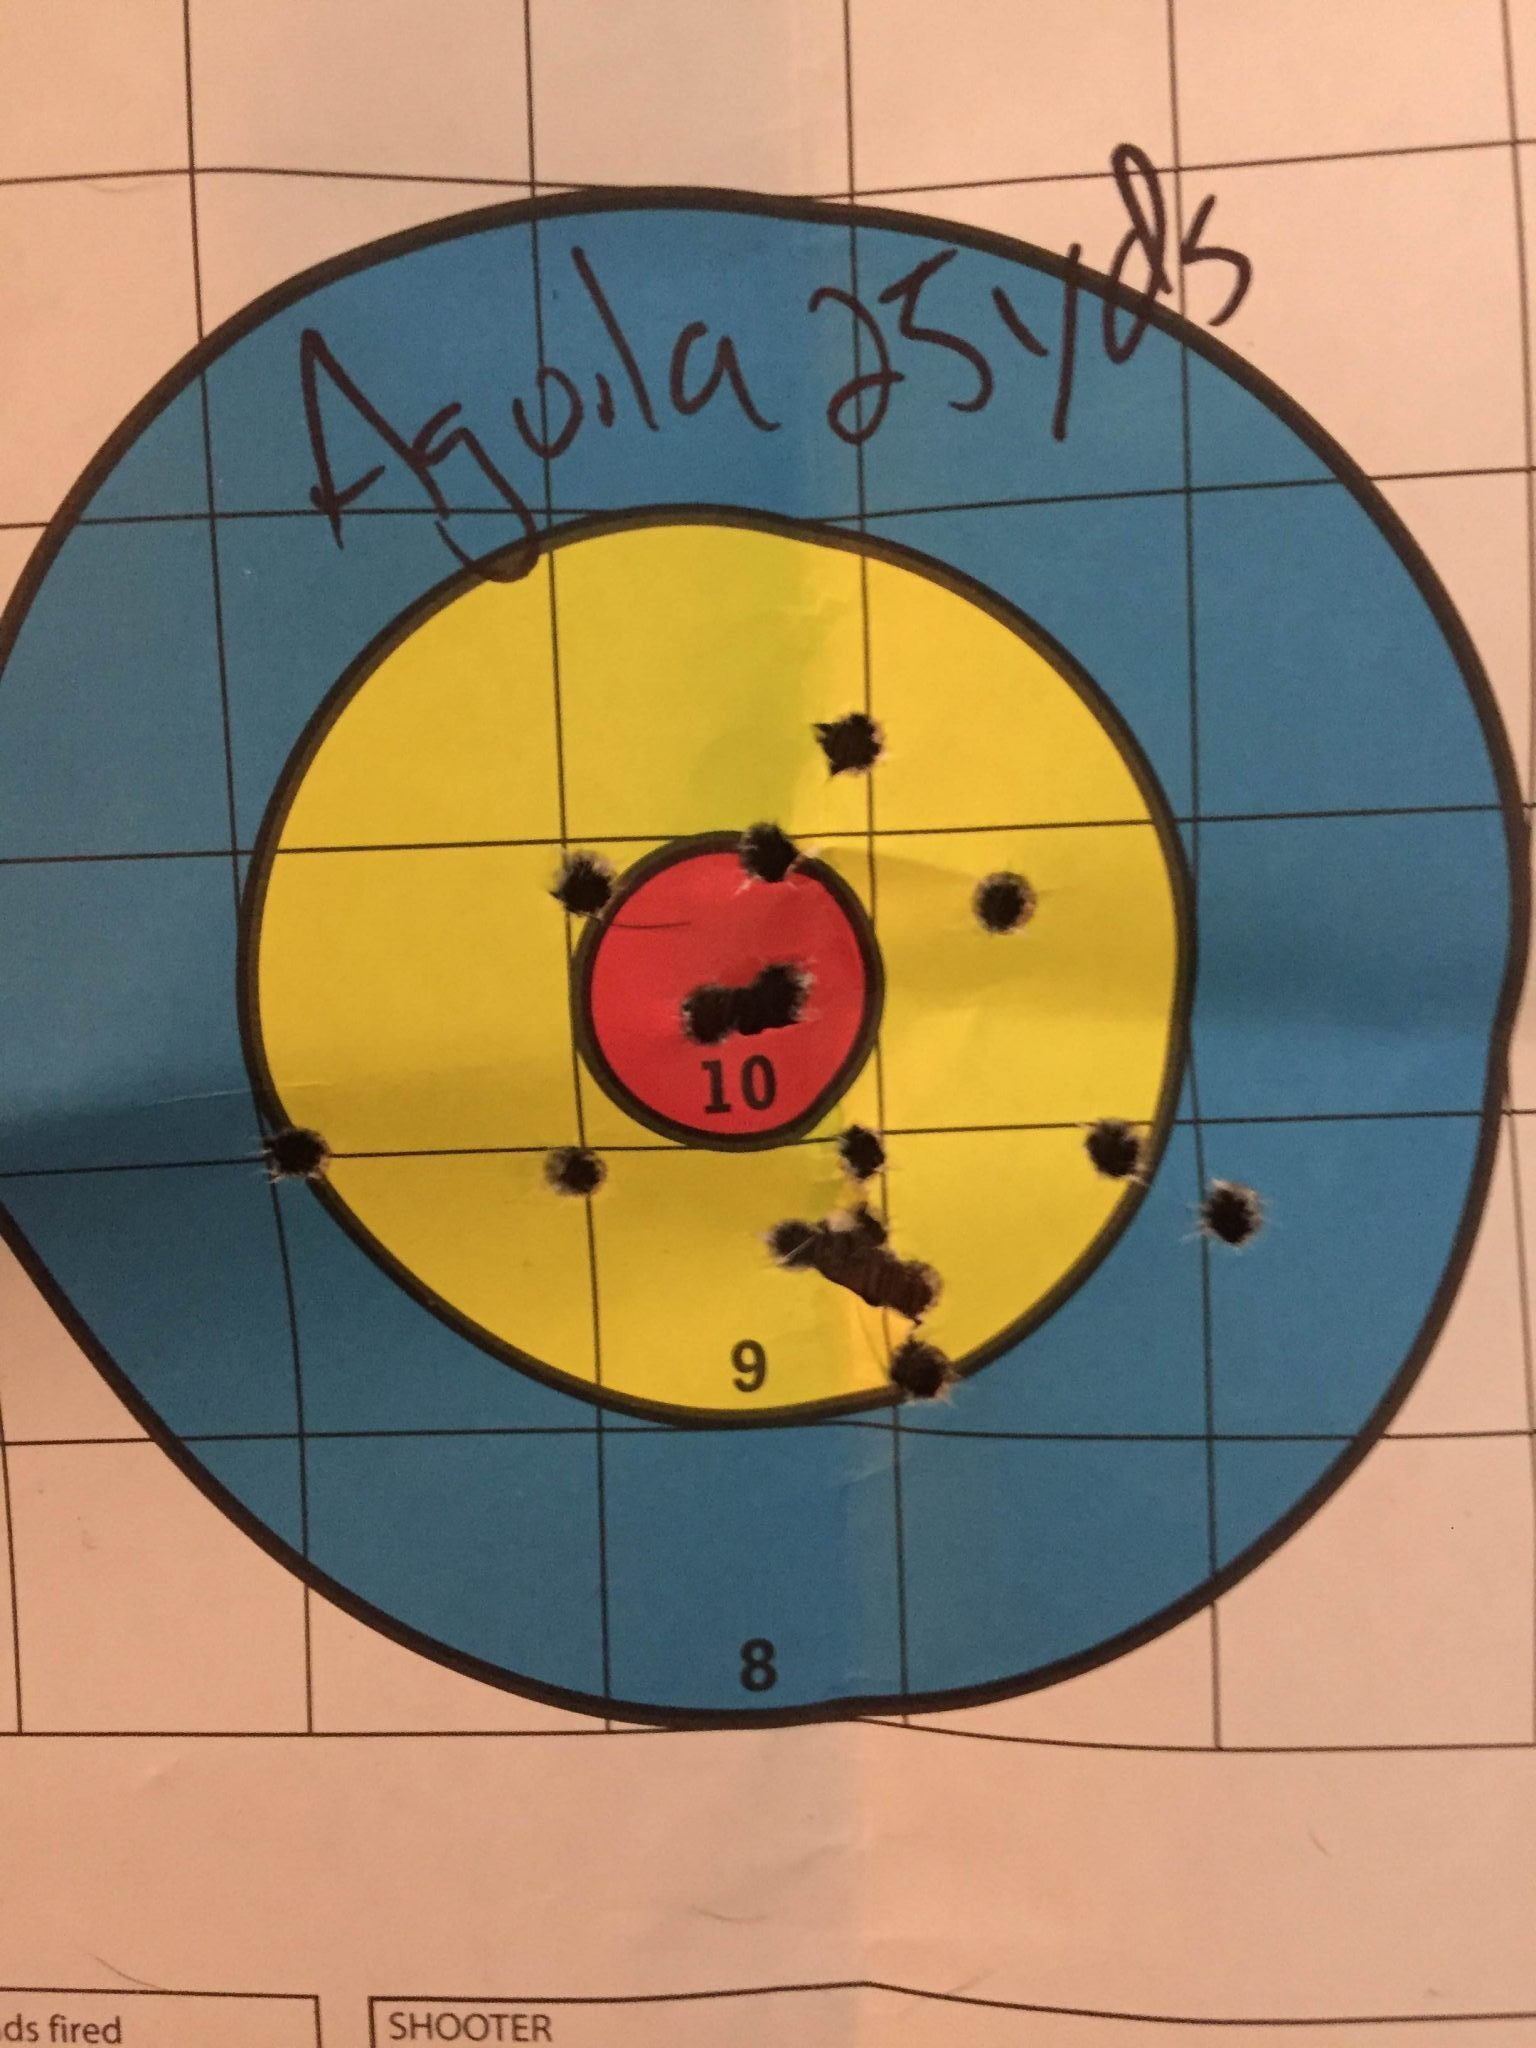 Aguila at 25 yd with irons